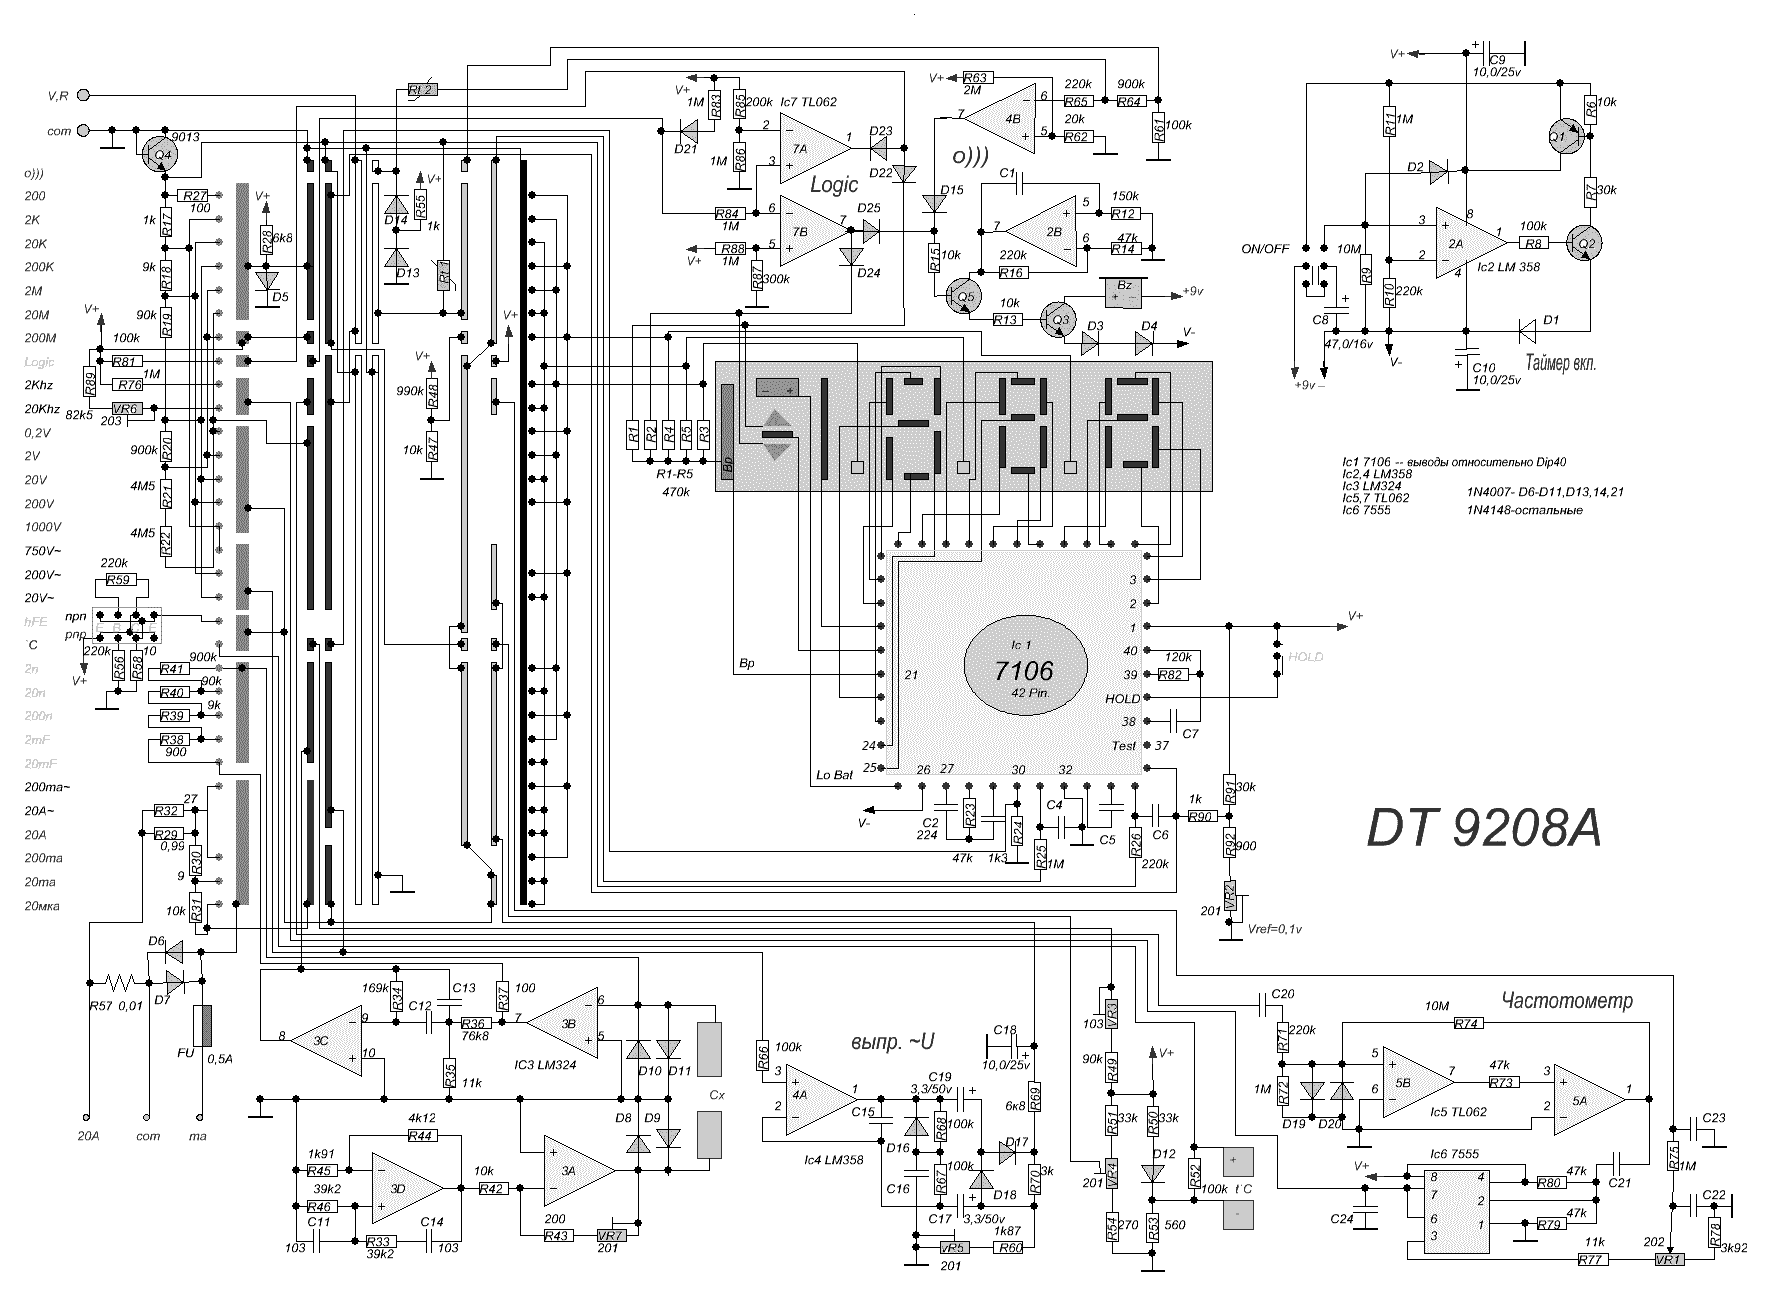 schematic diagram of the multimeter dt9208a